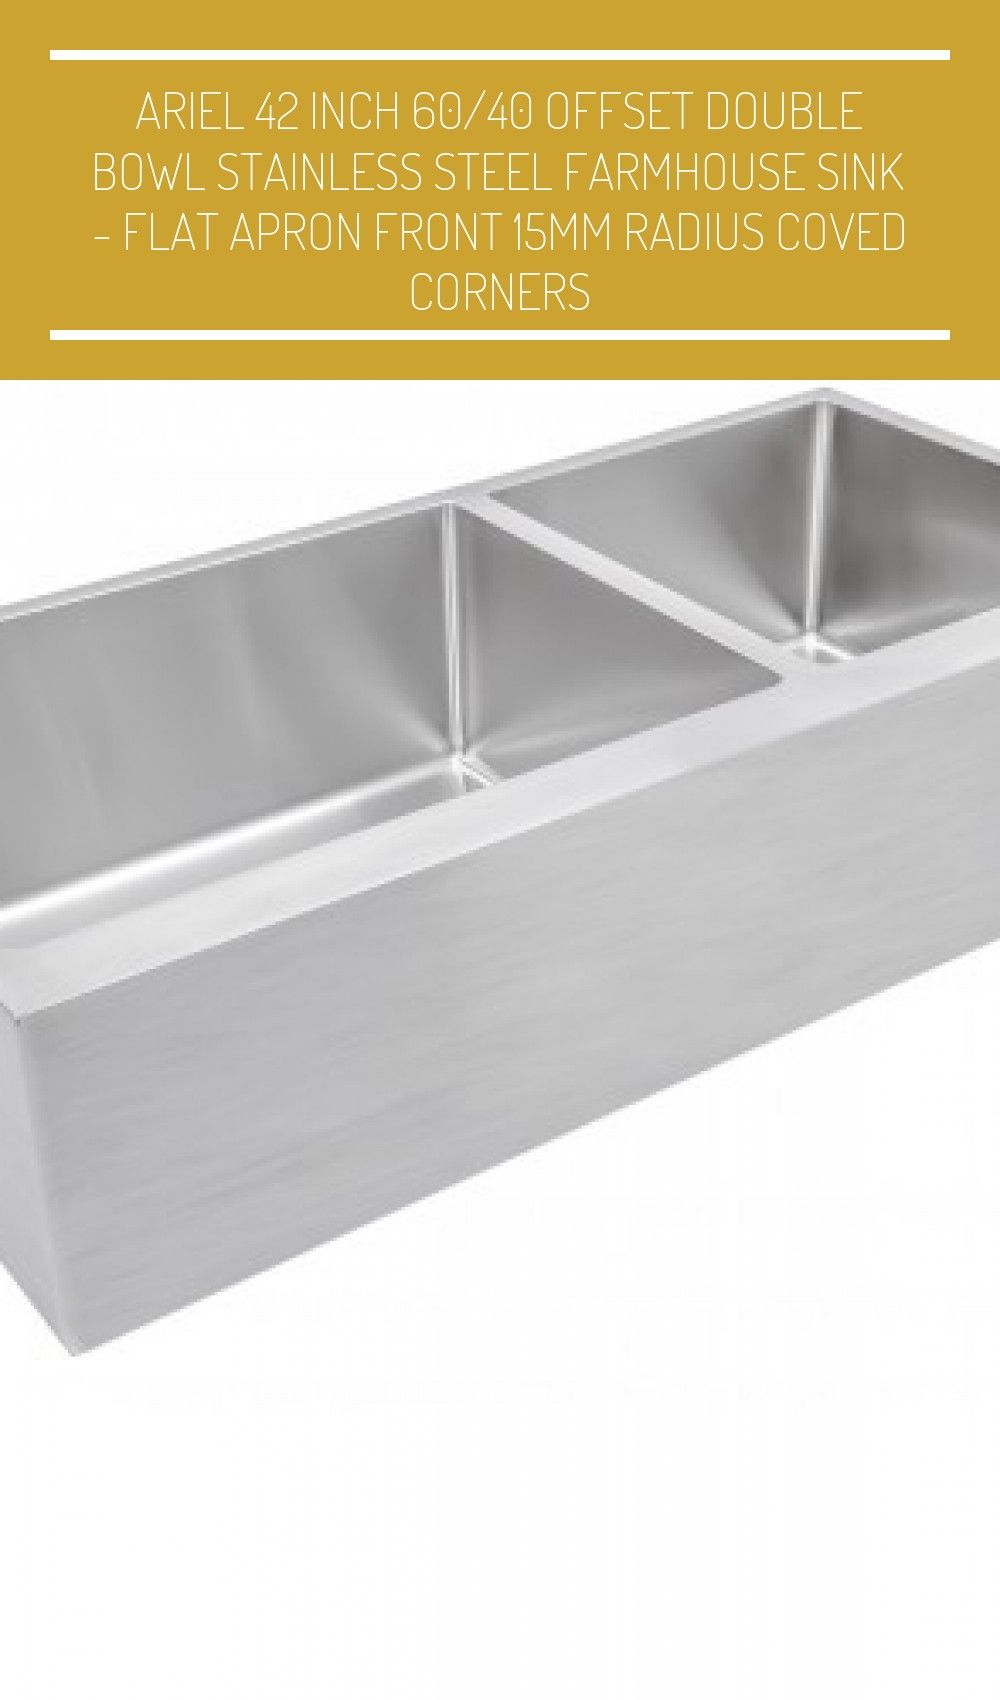 Ariel 42 Inch 60 40 Offset Double Bowl Farmhouse Apron Front Stainless S Farmhouse Sink Stainless Steel Farmhouse Sink Apron Front Stainless Steel Kitchen Sink